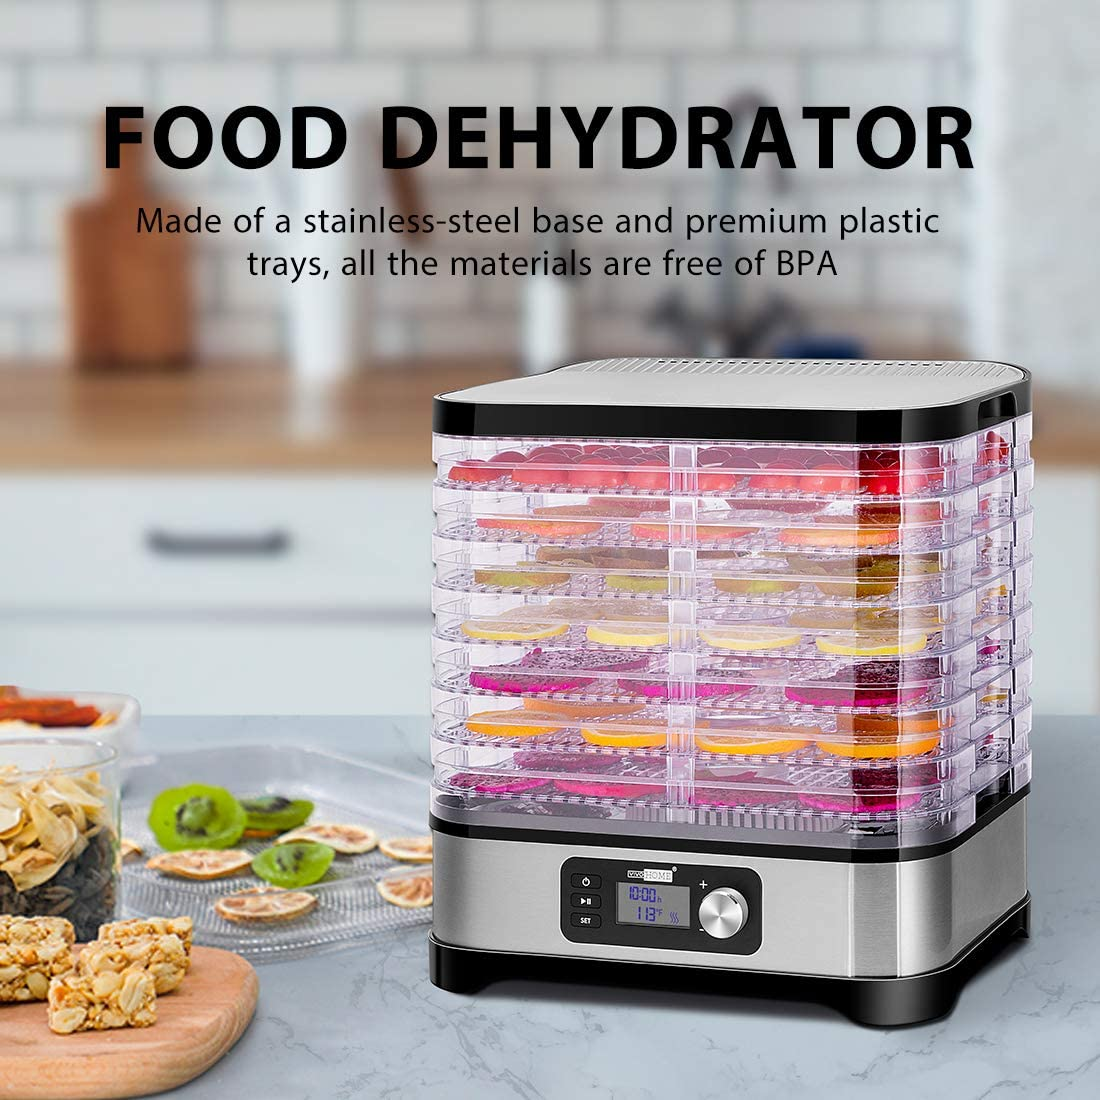 Amazon Com Vivohome Electric 400w 8 Trays Food Dehydrator Machine With Digital Timer And Temperature Control For Fruit Vegetable Meat Beef Jerky Maker Bpa Free Kitchen Dining